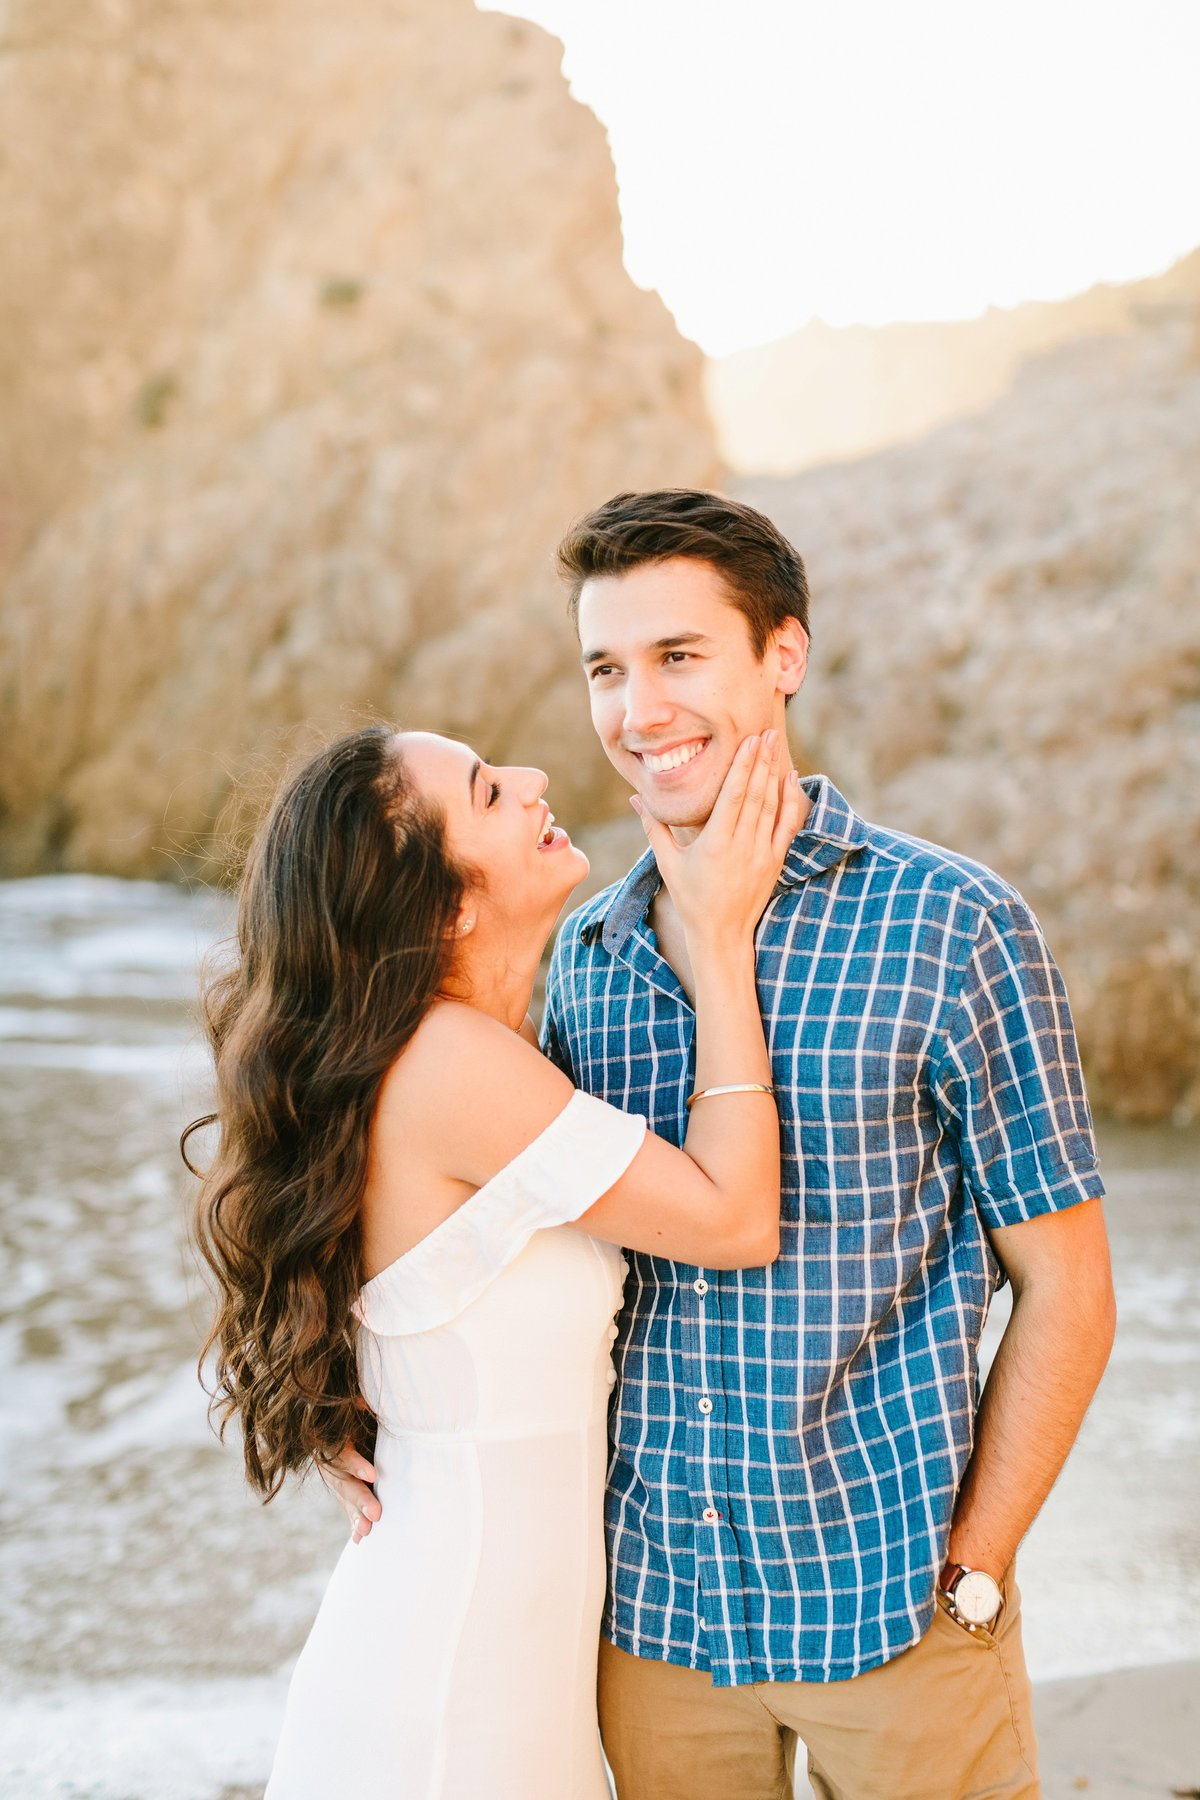 Best California Engagement Photographer_Jodee Debes Photography_021